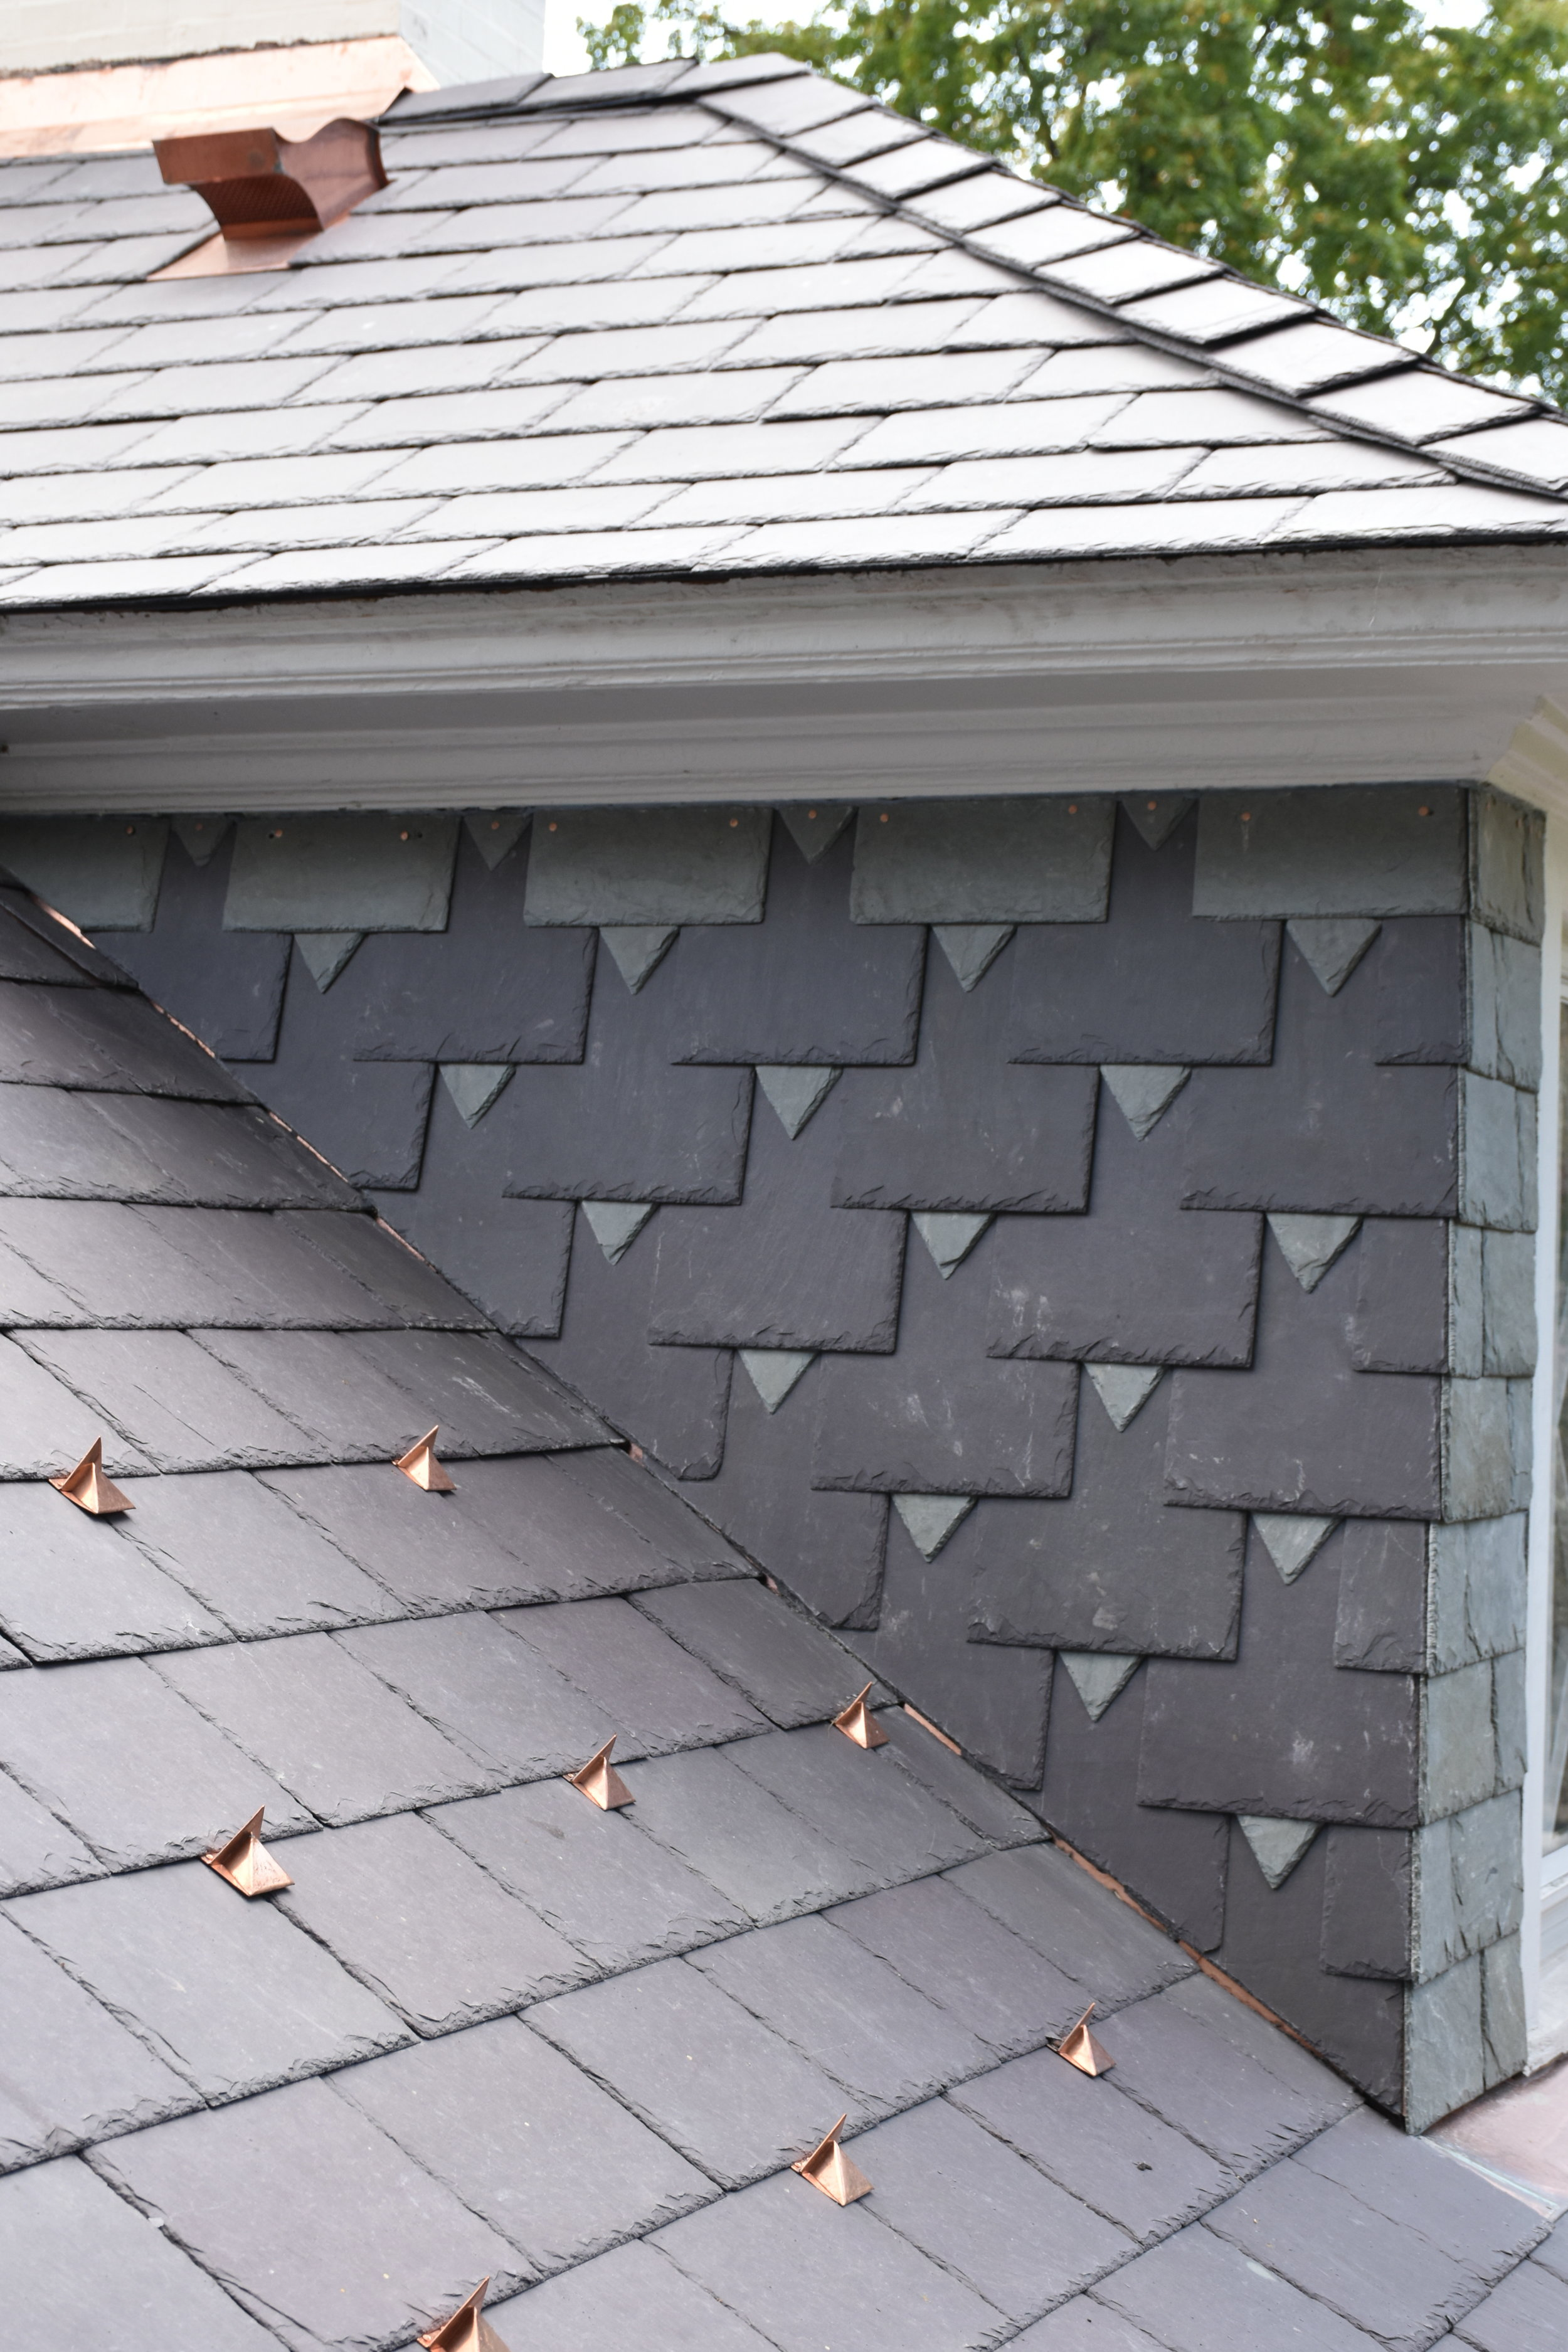 Slate Detail - Welsh Penrhyn slates with Vermont green ascents located in Pittsburgh, PA (august 2017).